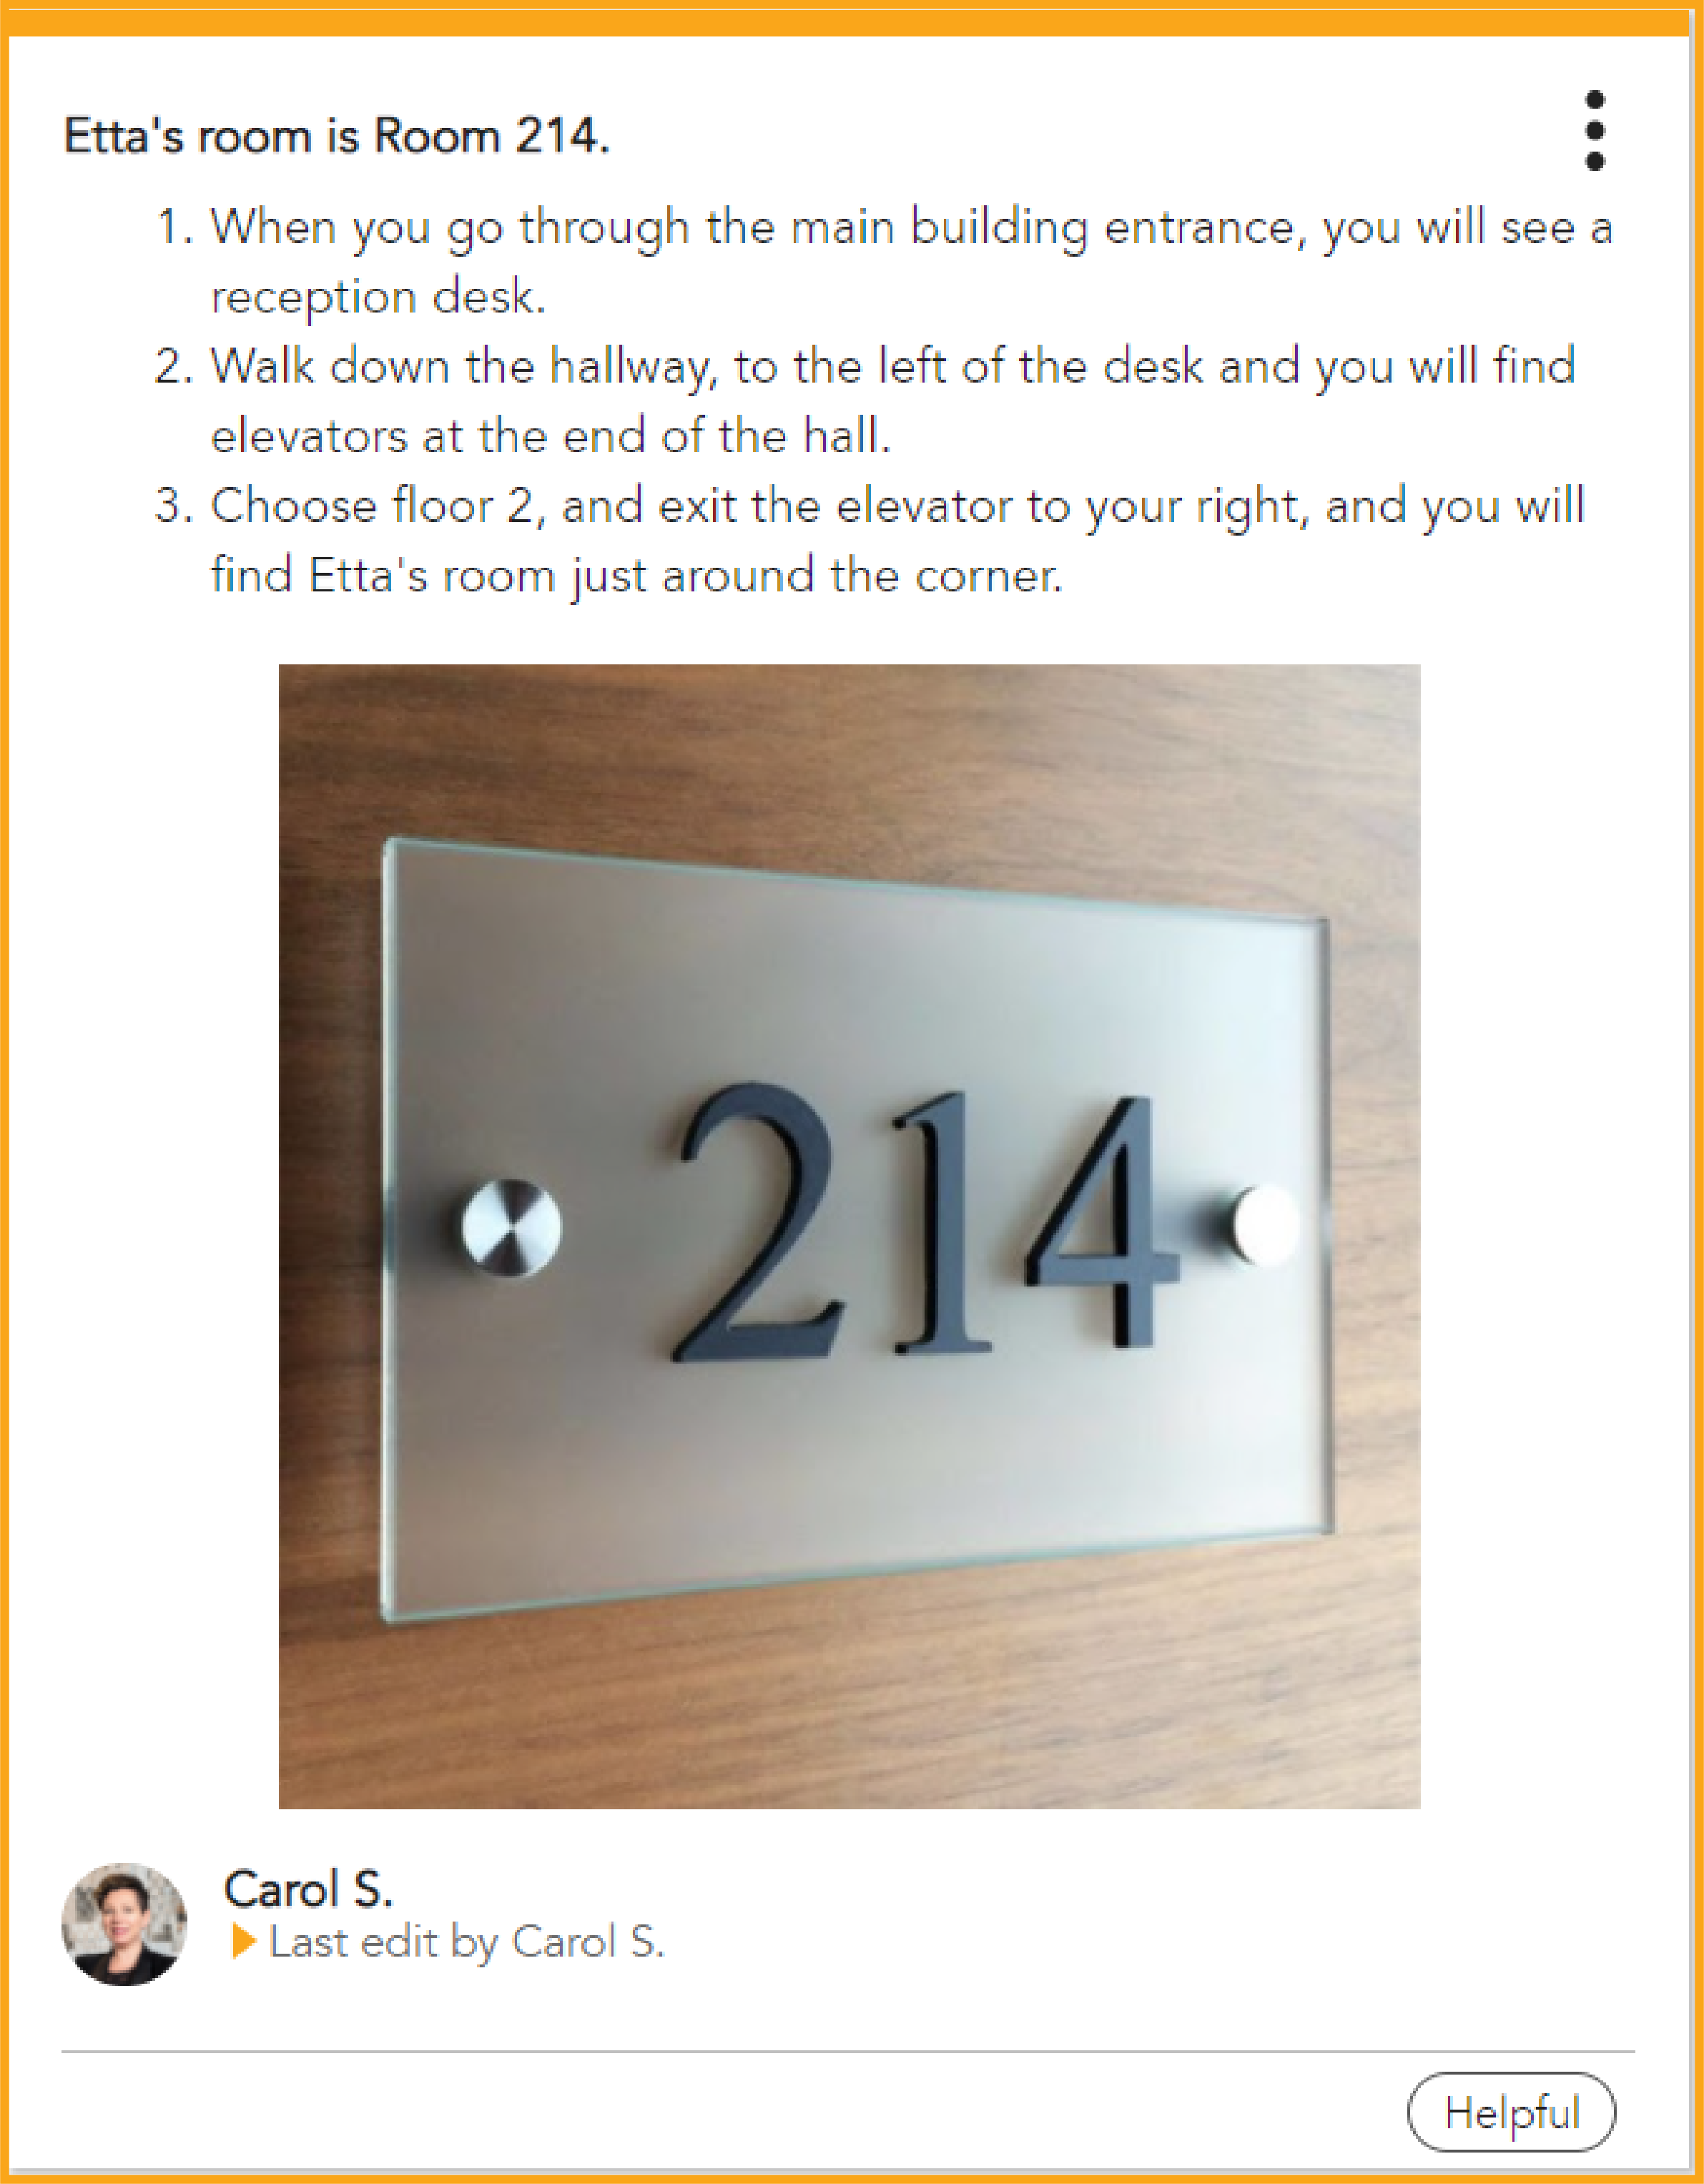 How to find Etta's Room